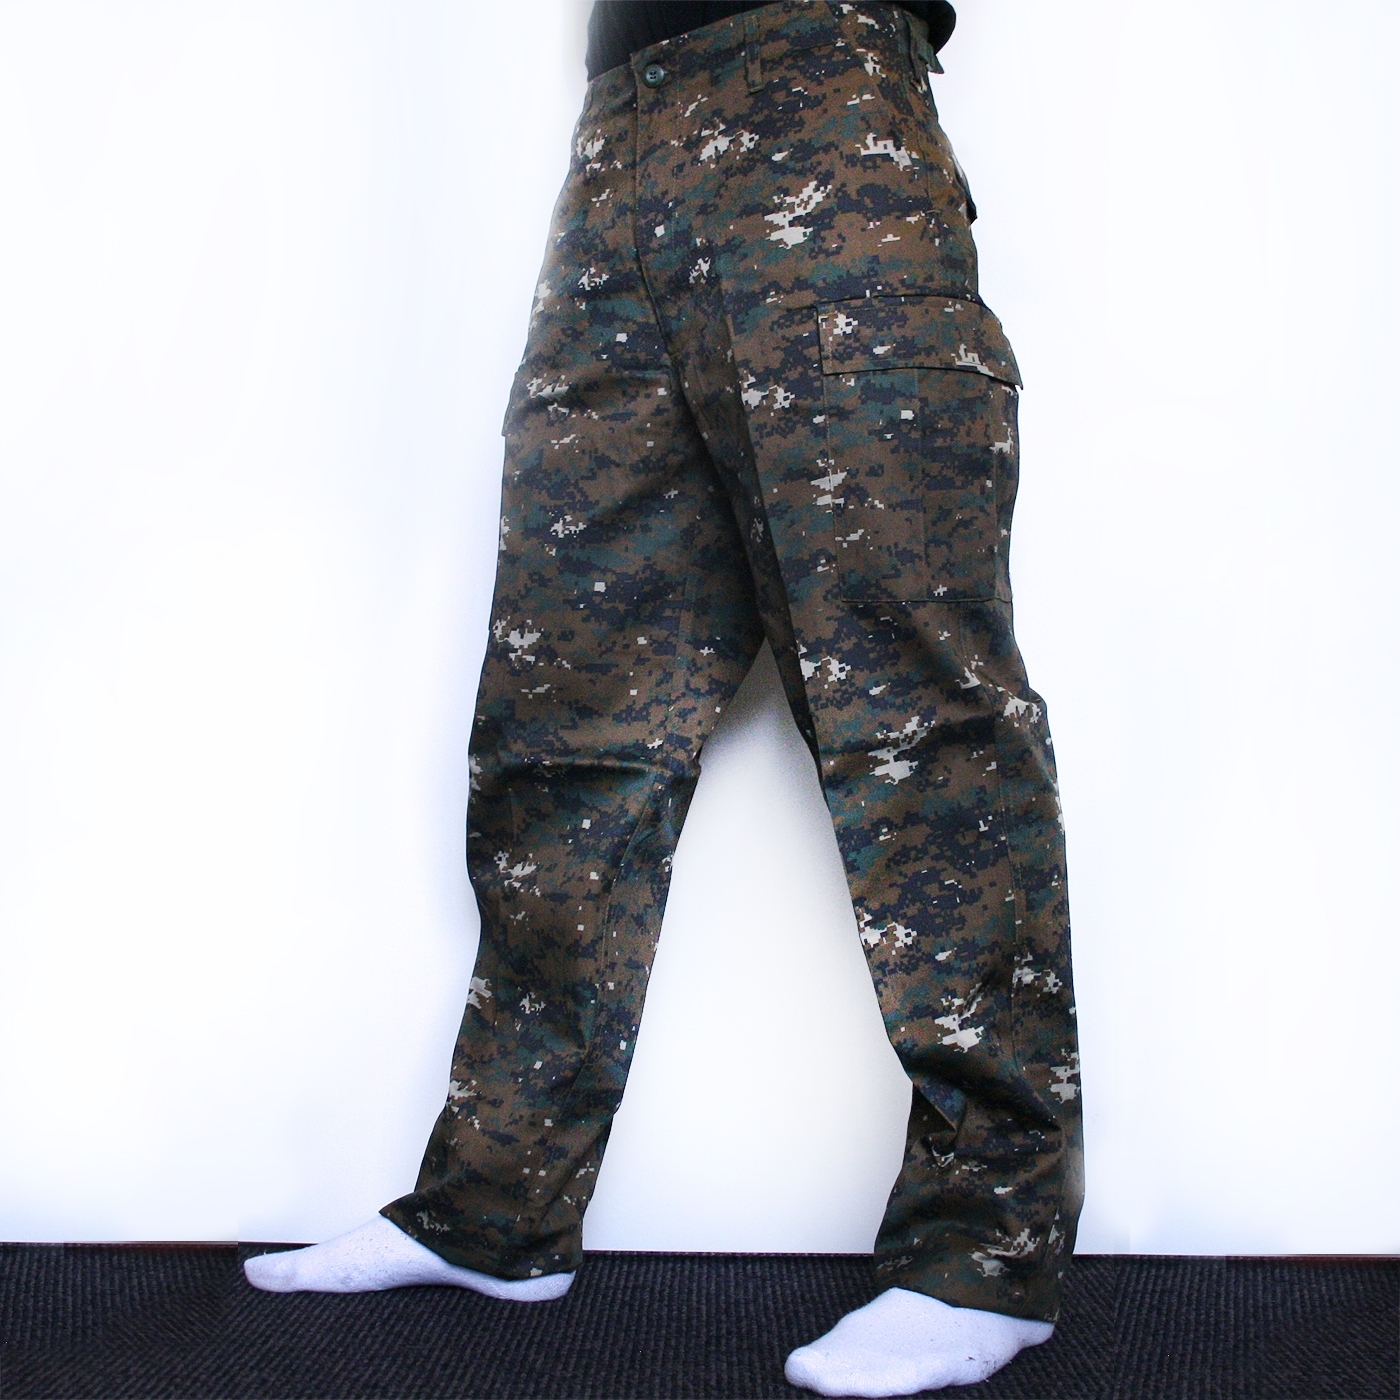 BDU Camo Pants & Shorts / Military Uniform Pants; Military Uniform Pants. Durability and functionality come with our Battle Dress Uniform - (BDU) pants. The ACU pant (Army Combat Uniform pants) are currently issued by the US Military. Both BDU Pants and ACU Pants are a favorite for tactical teams, police and security, emt, and anyone who needs.